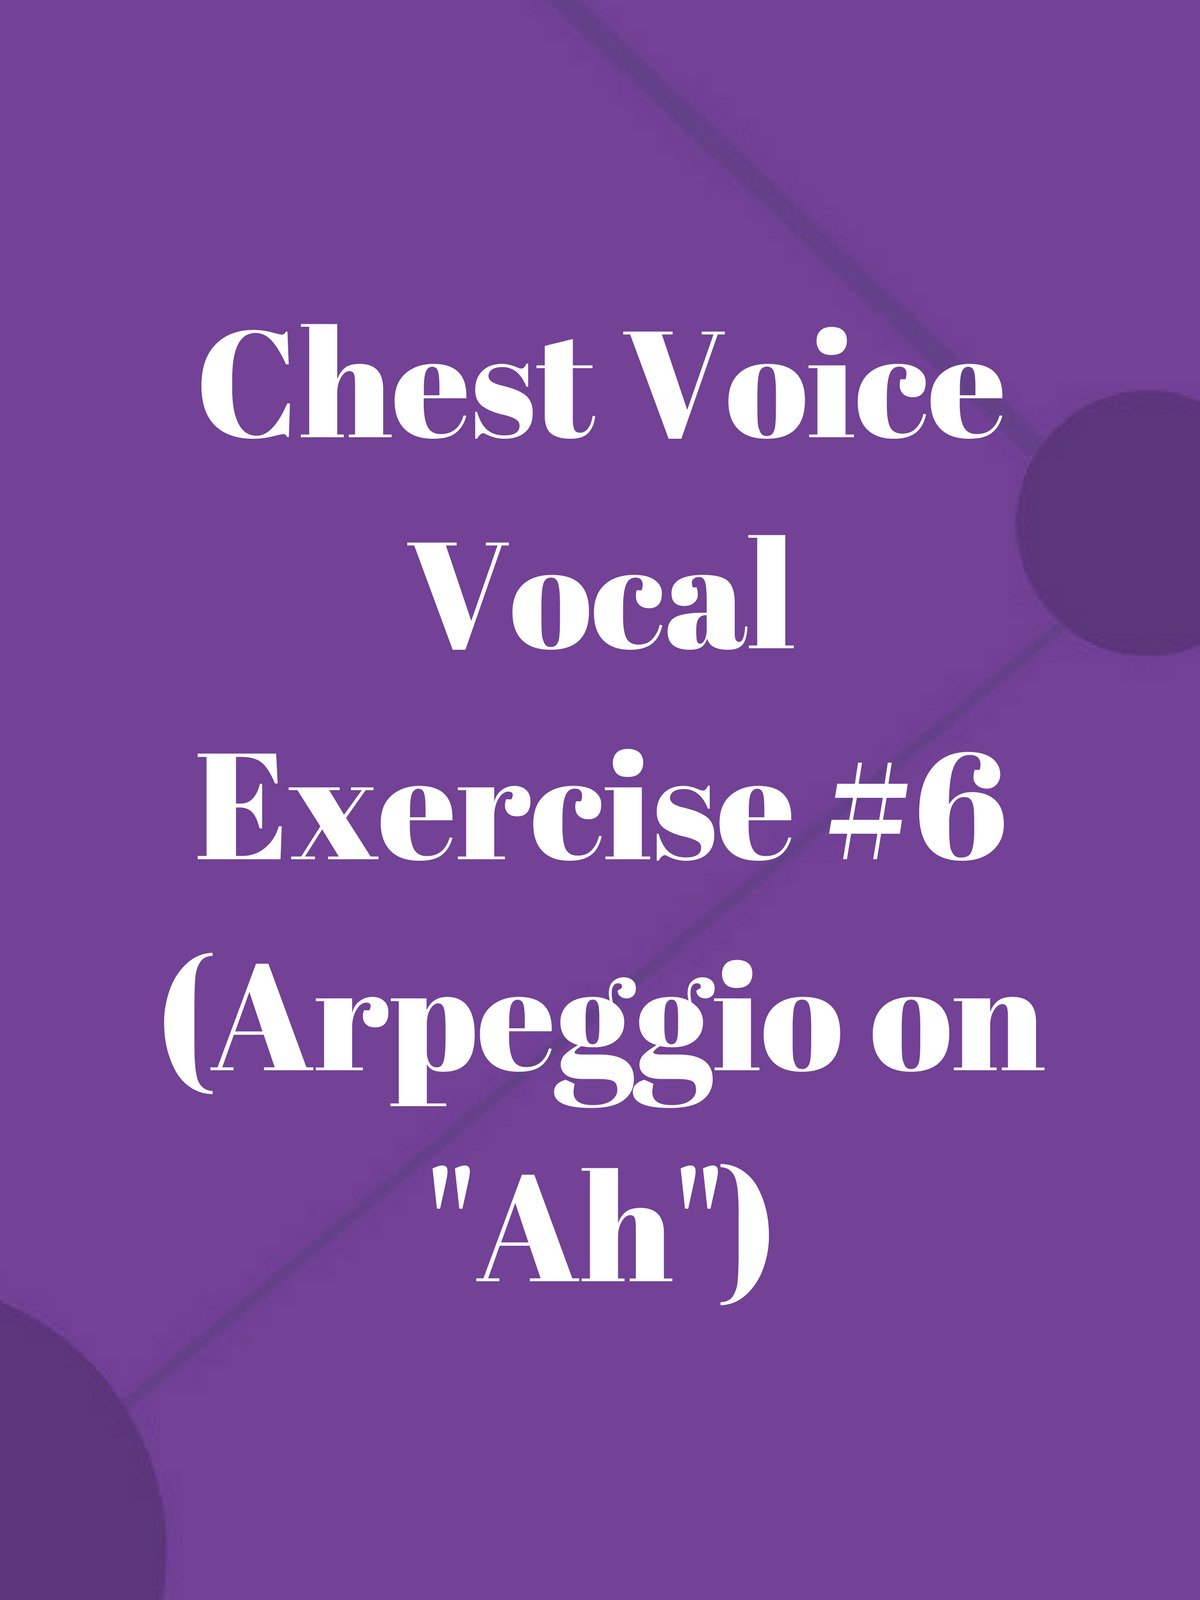 "Chest Voice Vocal Exercise #6 (Arpeggio on ""Ah"") on Amazon Prime Instant Video UK"